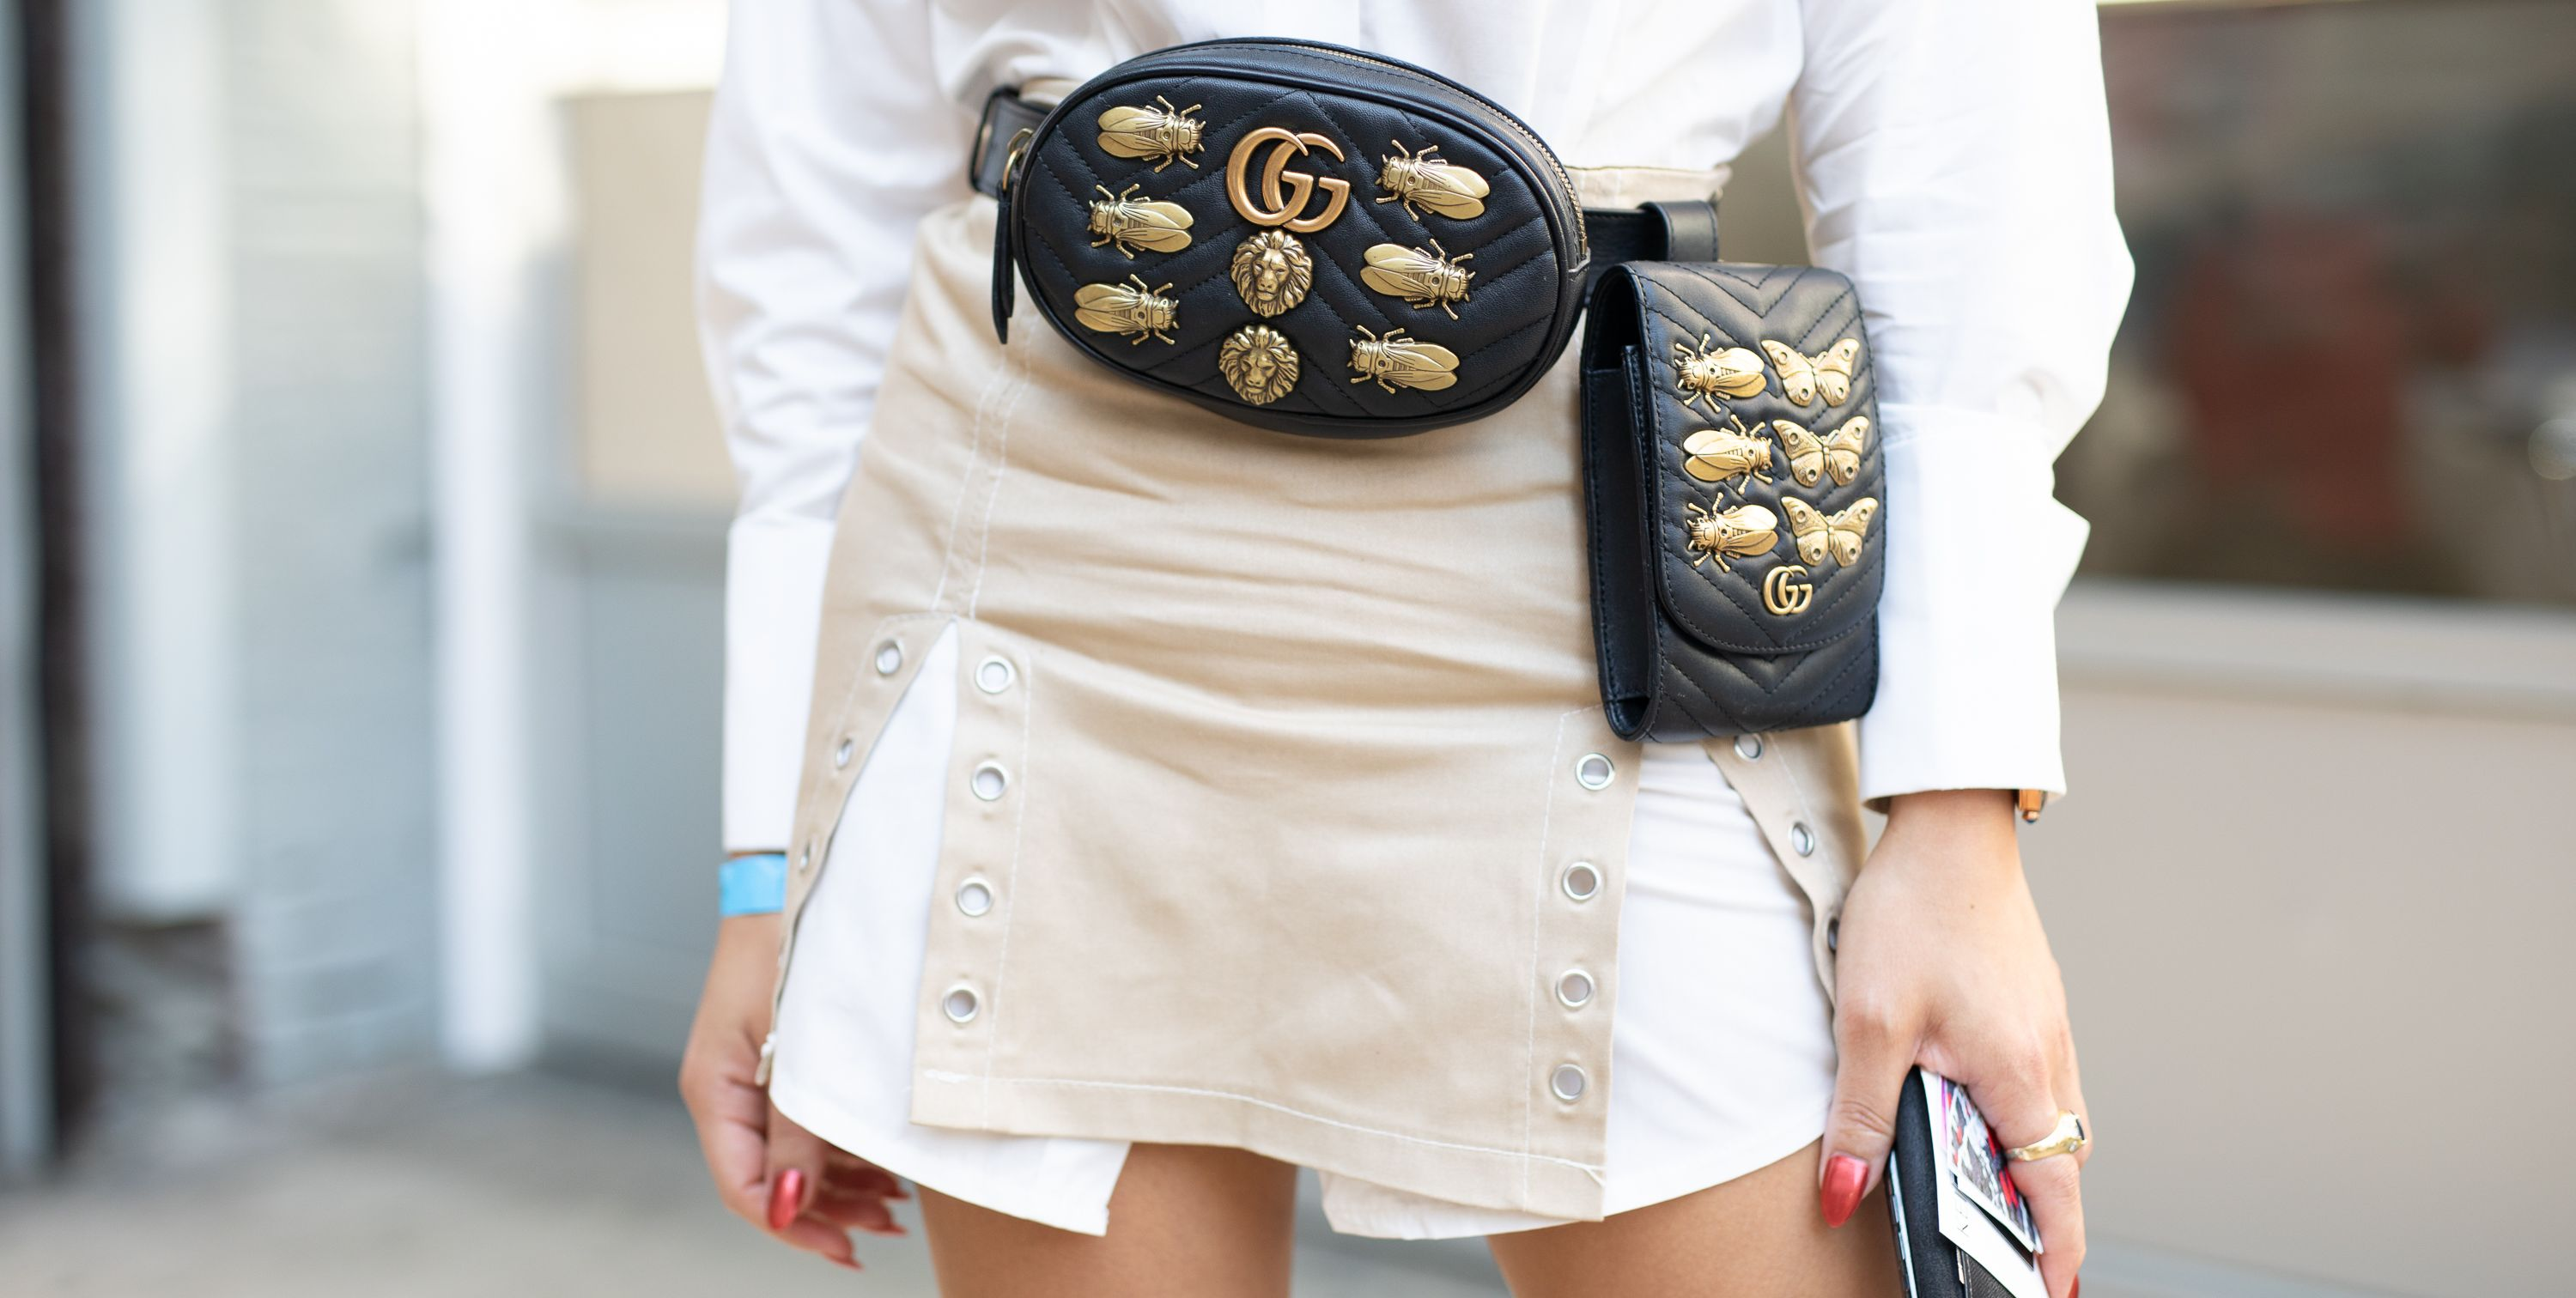 street-style-fanny-pack-tas-gucci